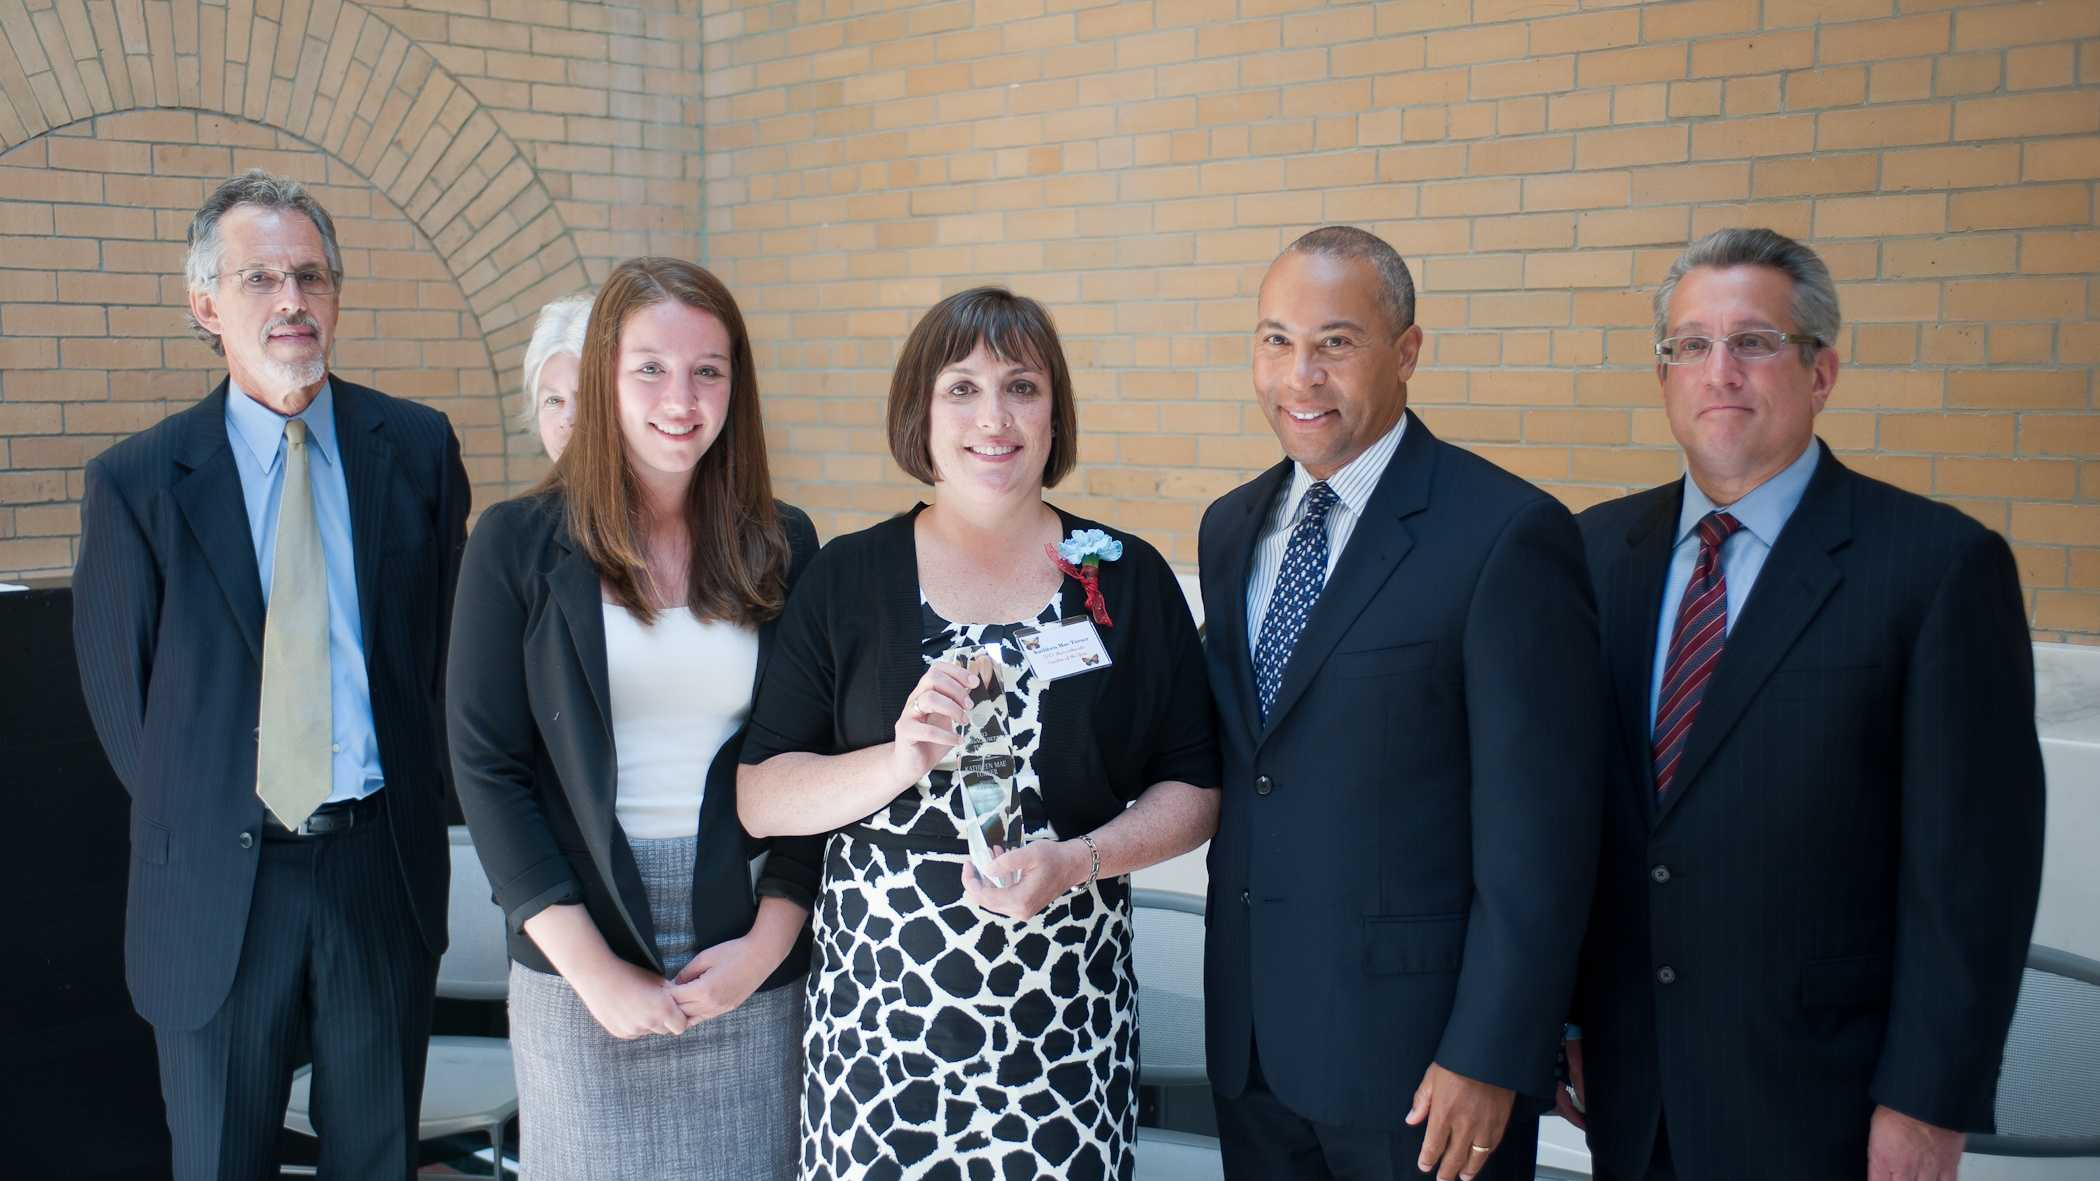 Governor Patrick congratulates 2013 Teacher of the Year Kathleen Mae Turner of Sharon High School. From left: Paul Reville, Secretary of Education&#x3B; Alex Stoller, former student of Ms. Turner&#x3B; Ms. Turner, 2013 Teacher of the Year&#x3B; Governor Patrick&#x3B; and Mitchel Chester, Commissioner of the Department of Elementary and Secondary Education.